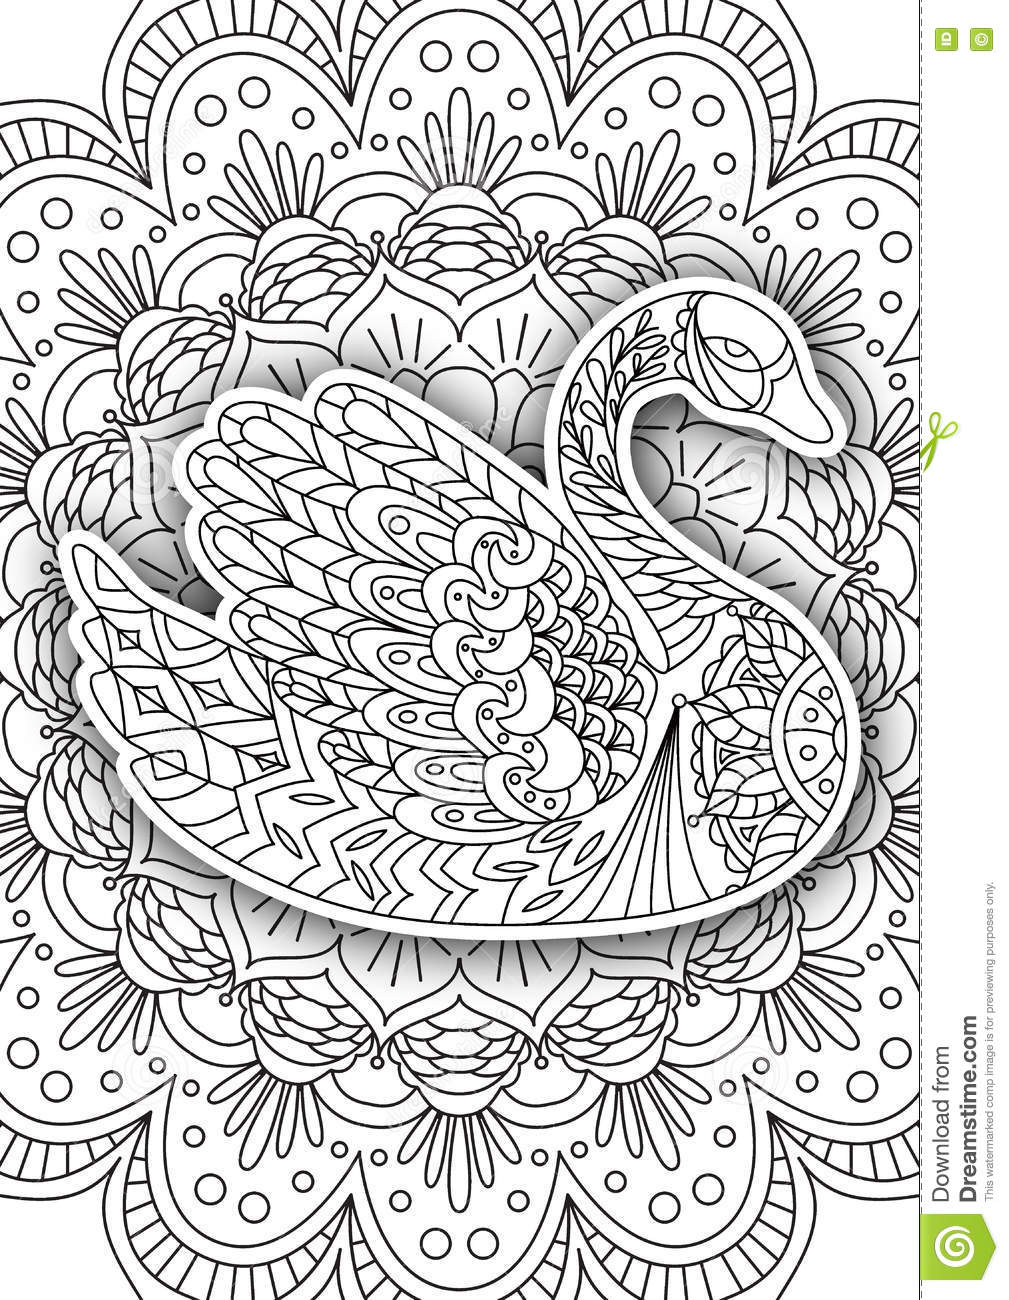 printable coloring book page for adults stock vector image 74673289